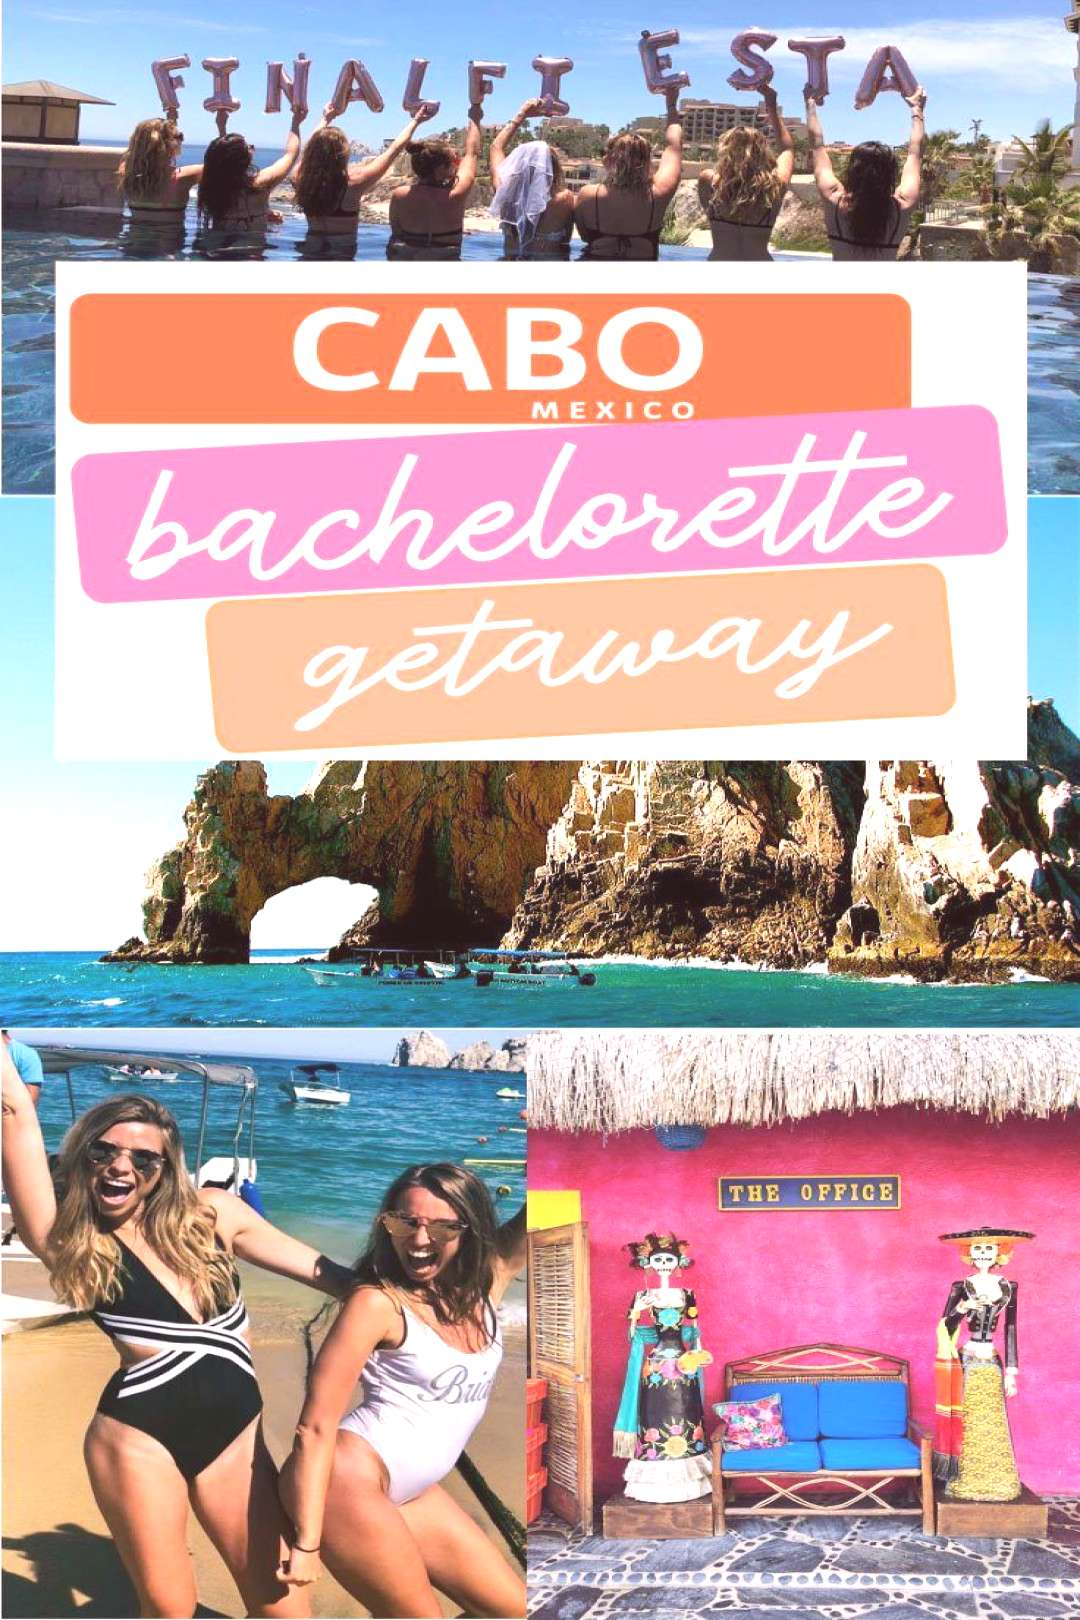 Cabo Bachelorette Party Weekend - Cabo Bachelorette Party Recap. Bachelorette Party ideas for Cabo